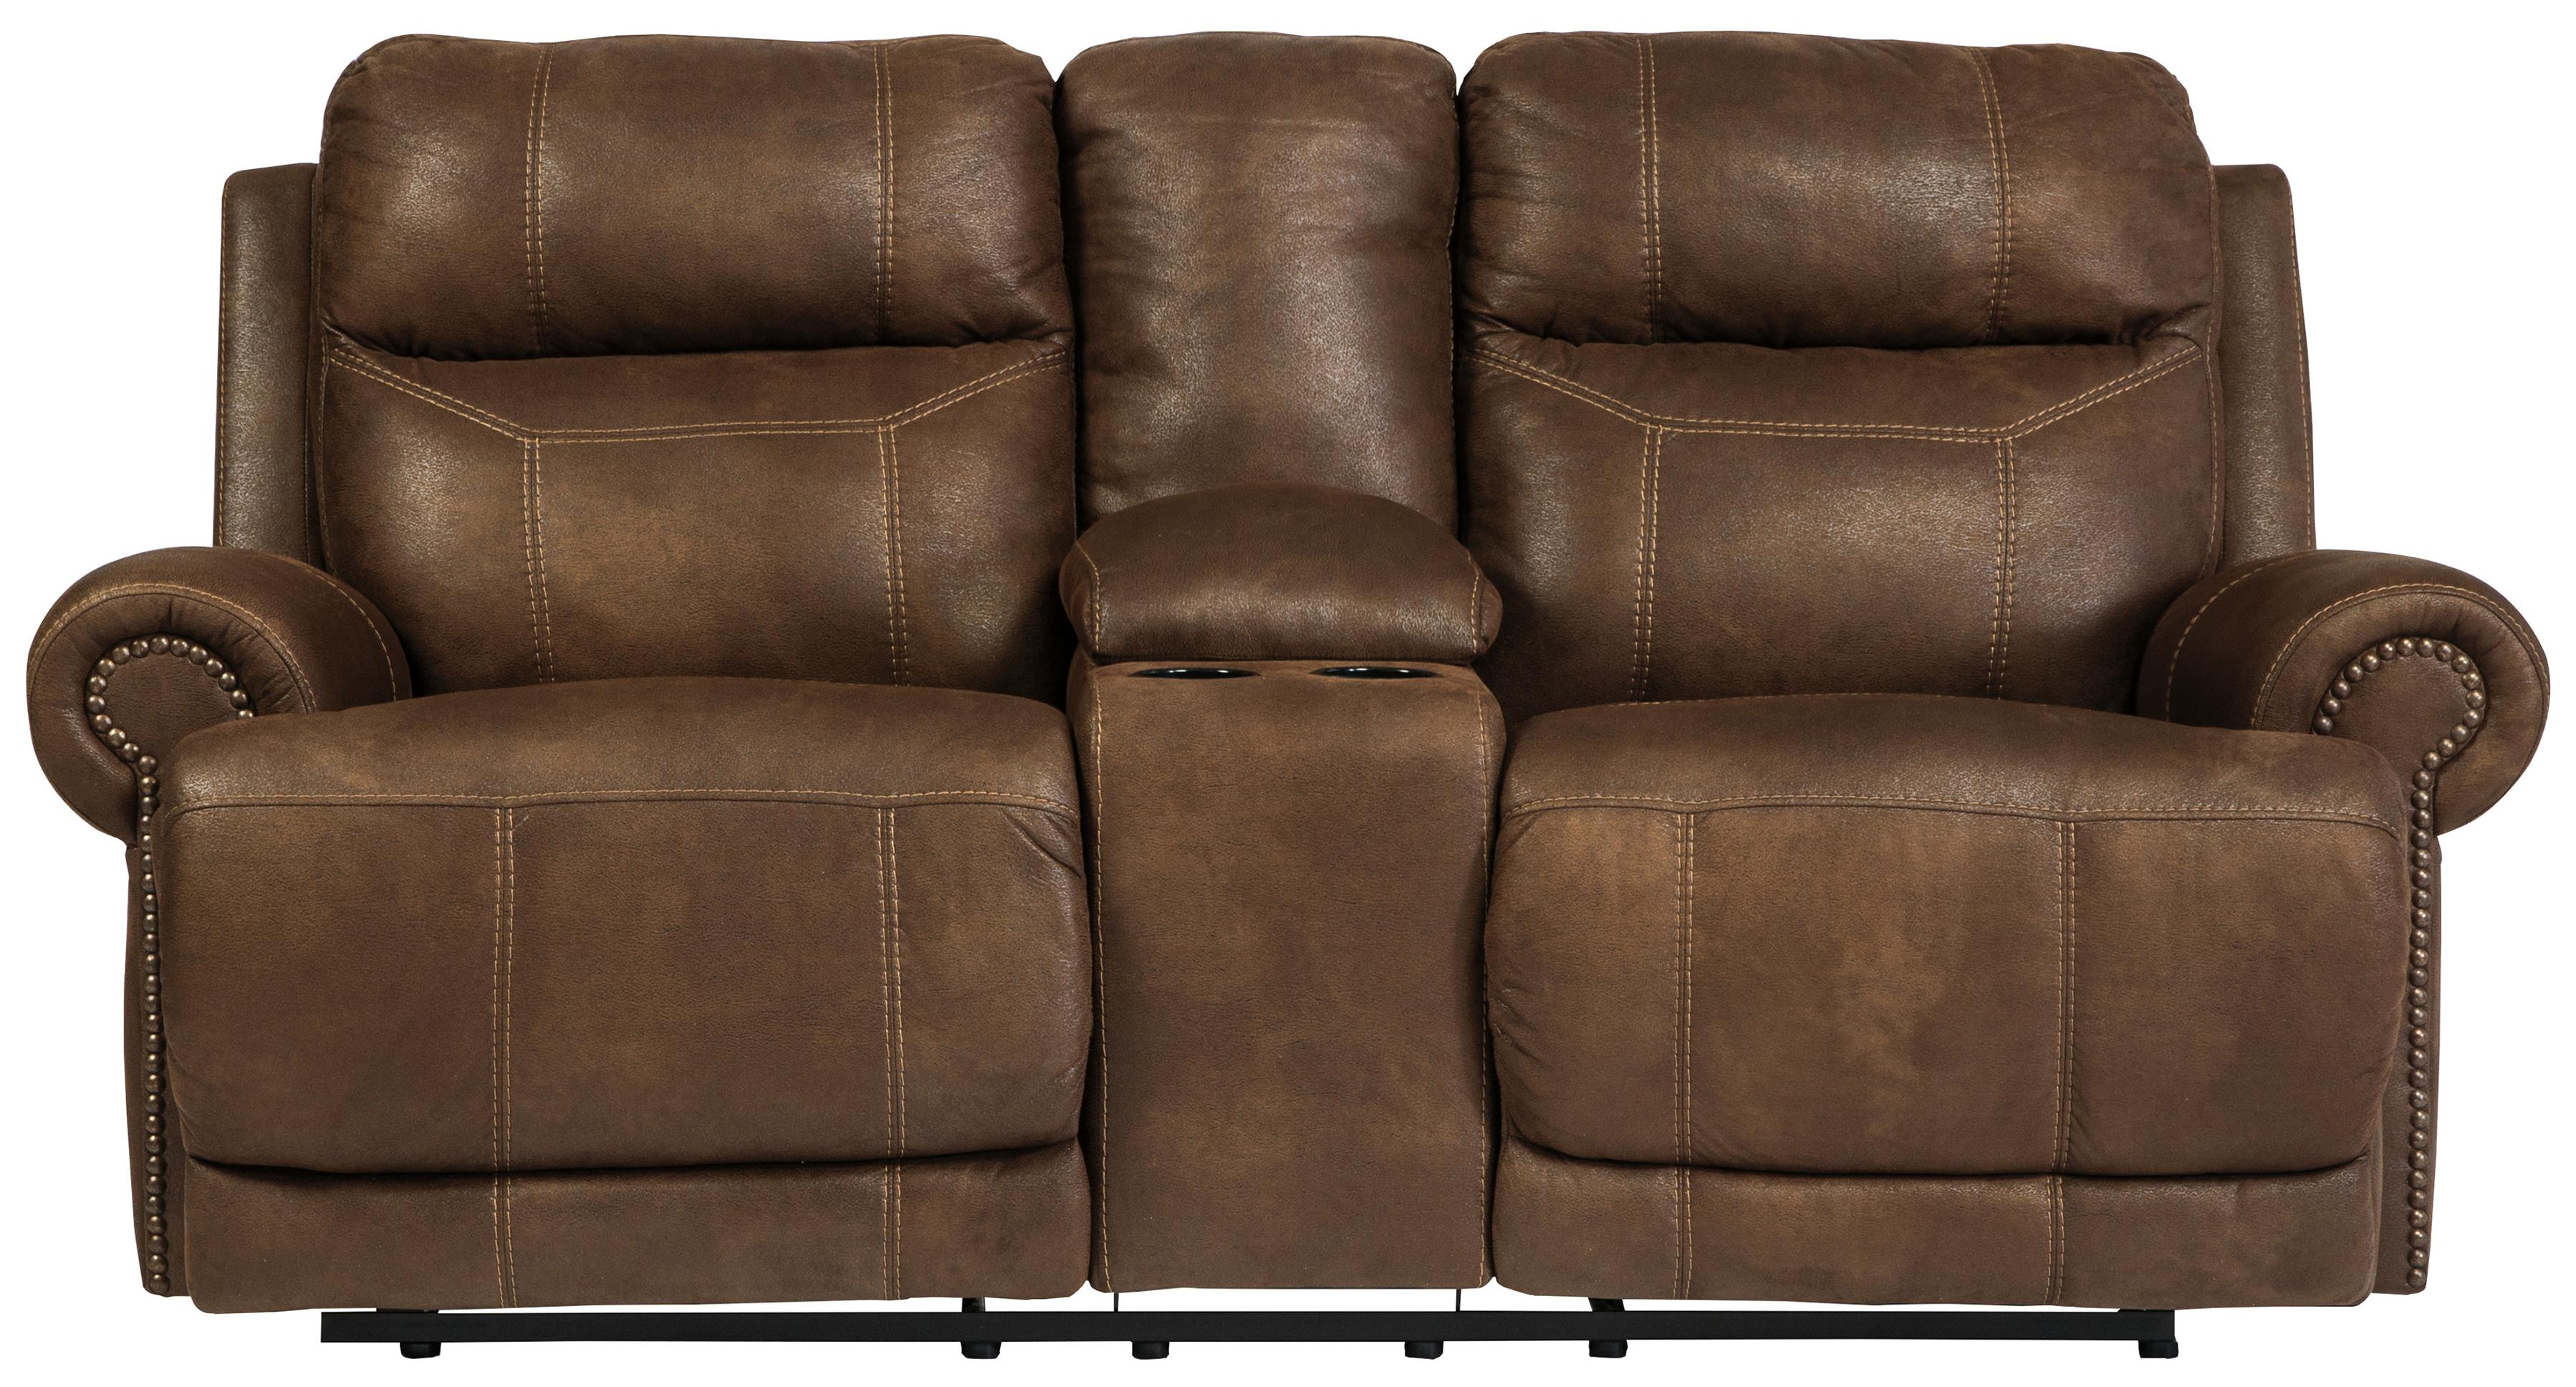 Signature Design by Ashley Austere - Brown Double Reclining Loveseat w/ Console - Item Number: 3840094